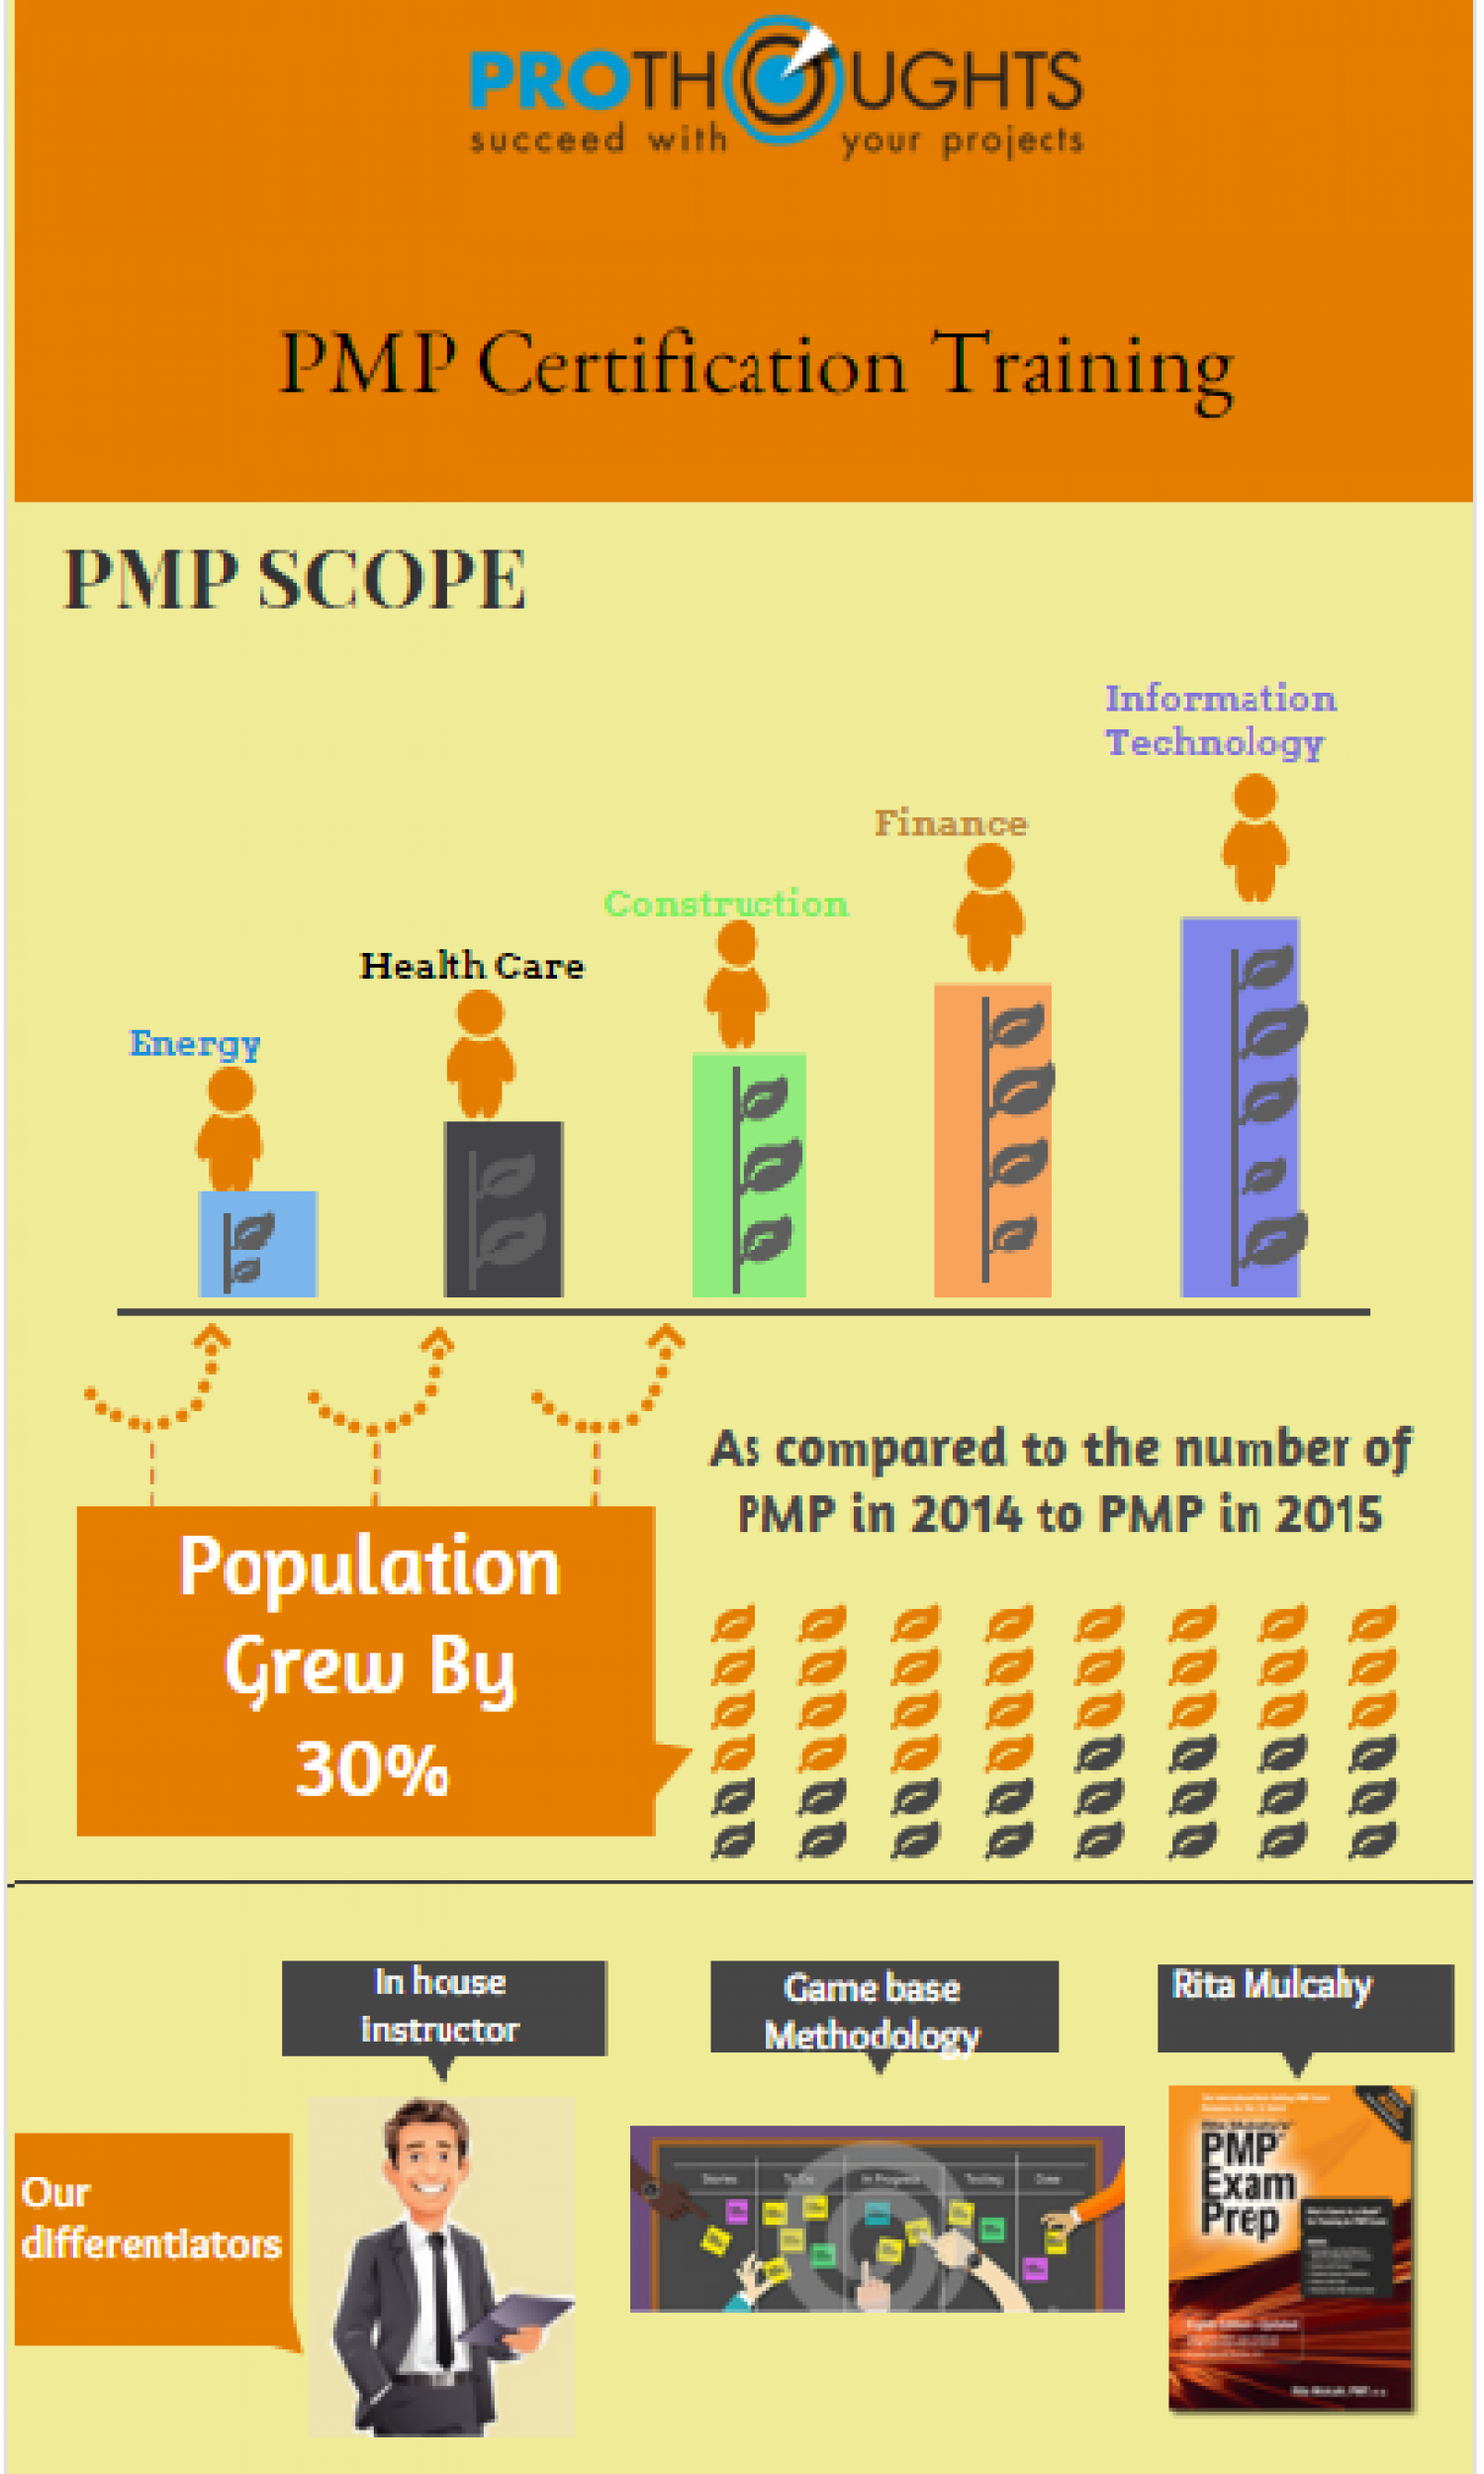 Pmp certification visual pmp certification infographic xflitez Image collections